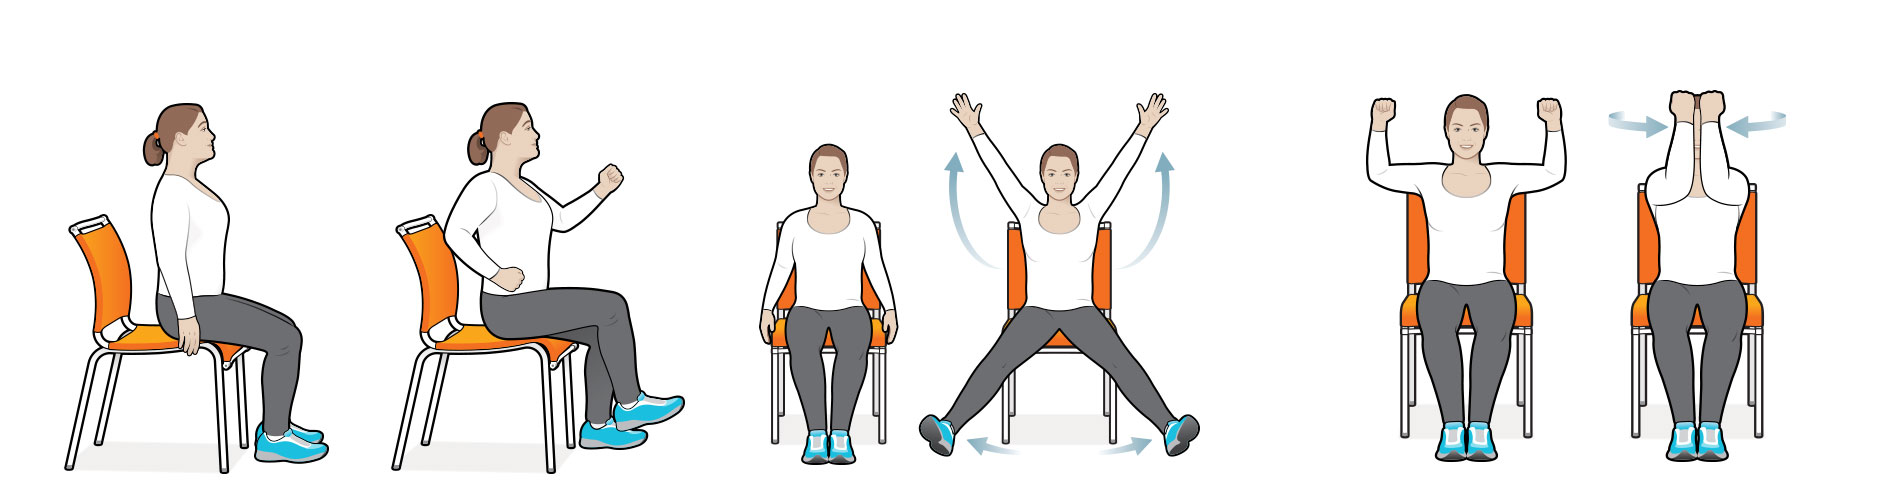 Clipart exercise chair exercise. Free exercising cliparts download